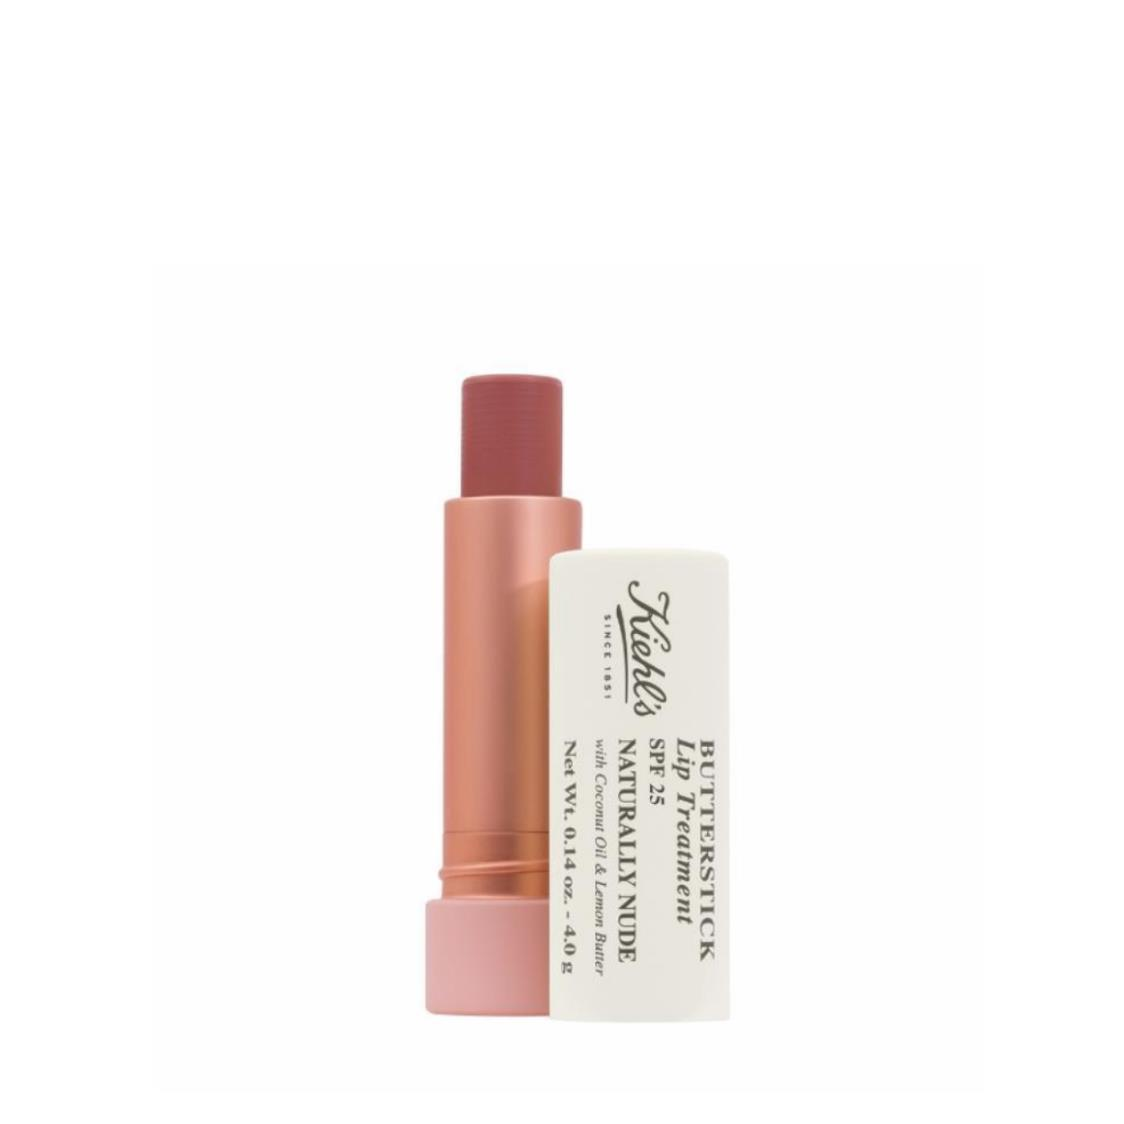 Butterstick Lip Treatment SPF25 in Nude